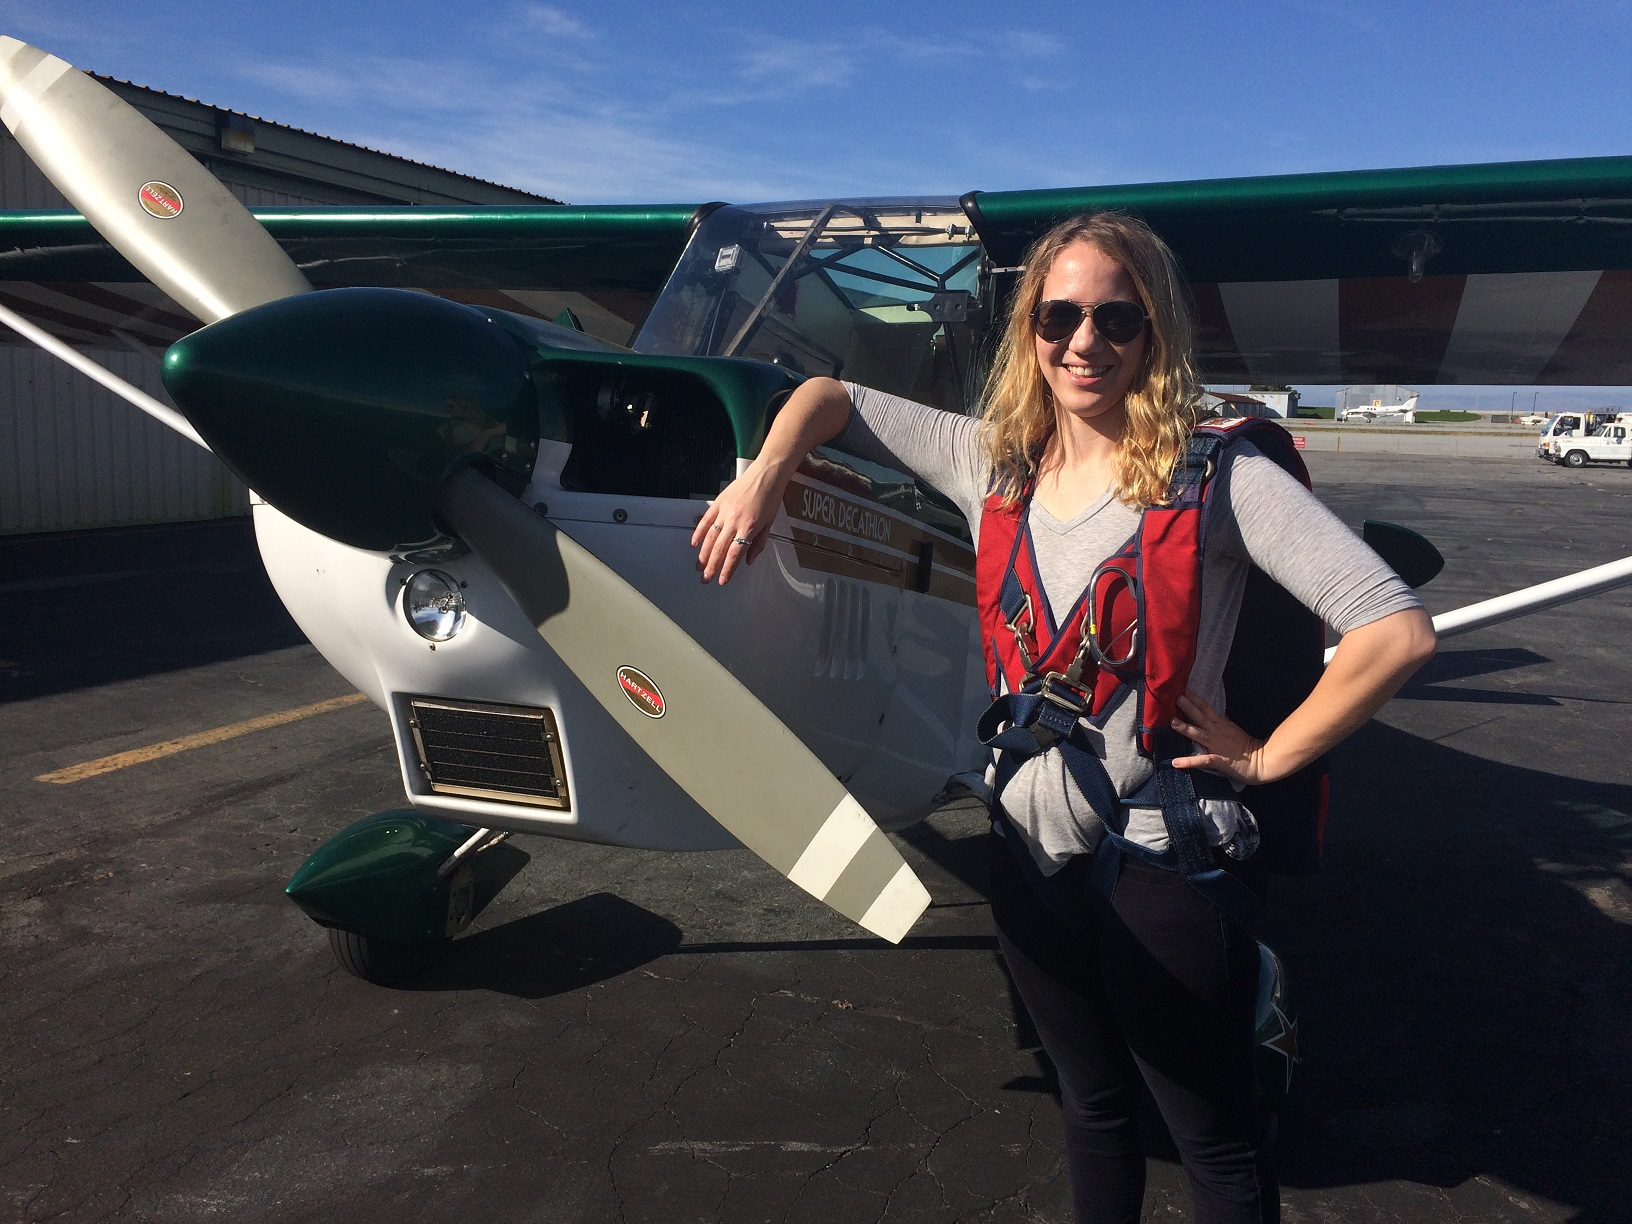 aviation scholarships Two majors that are popular are aviation management and avionics technology continue reading to learn more about this field and about the world of aviation scholarships.